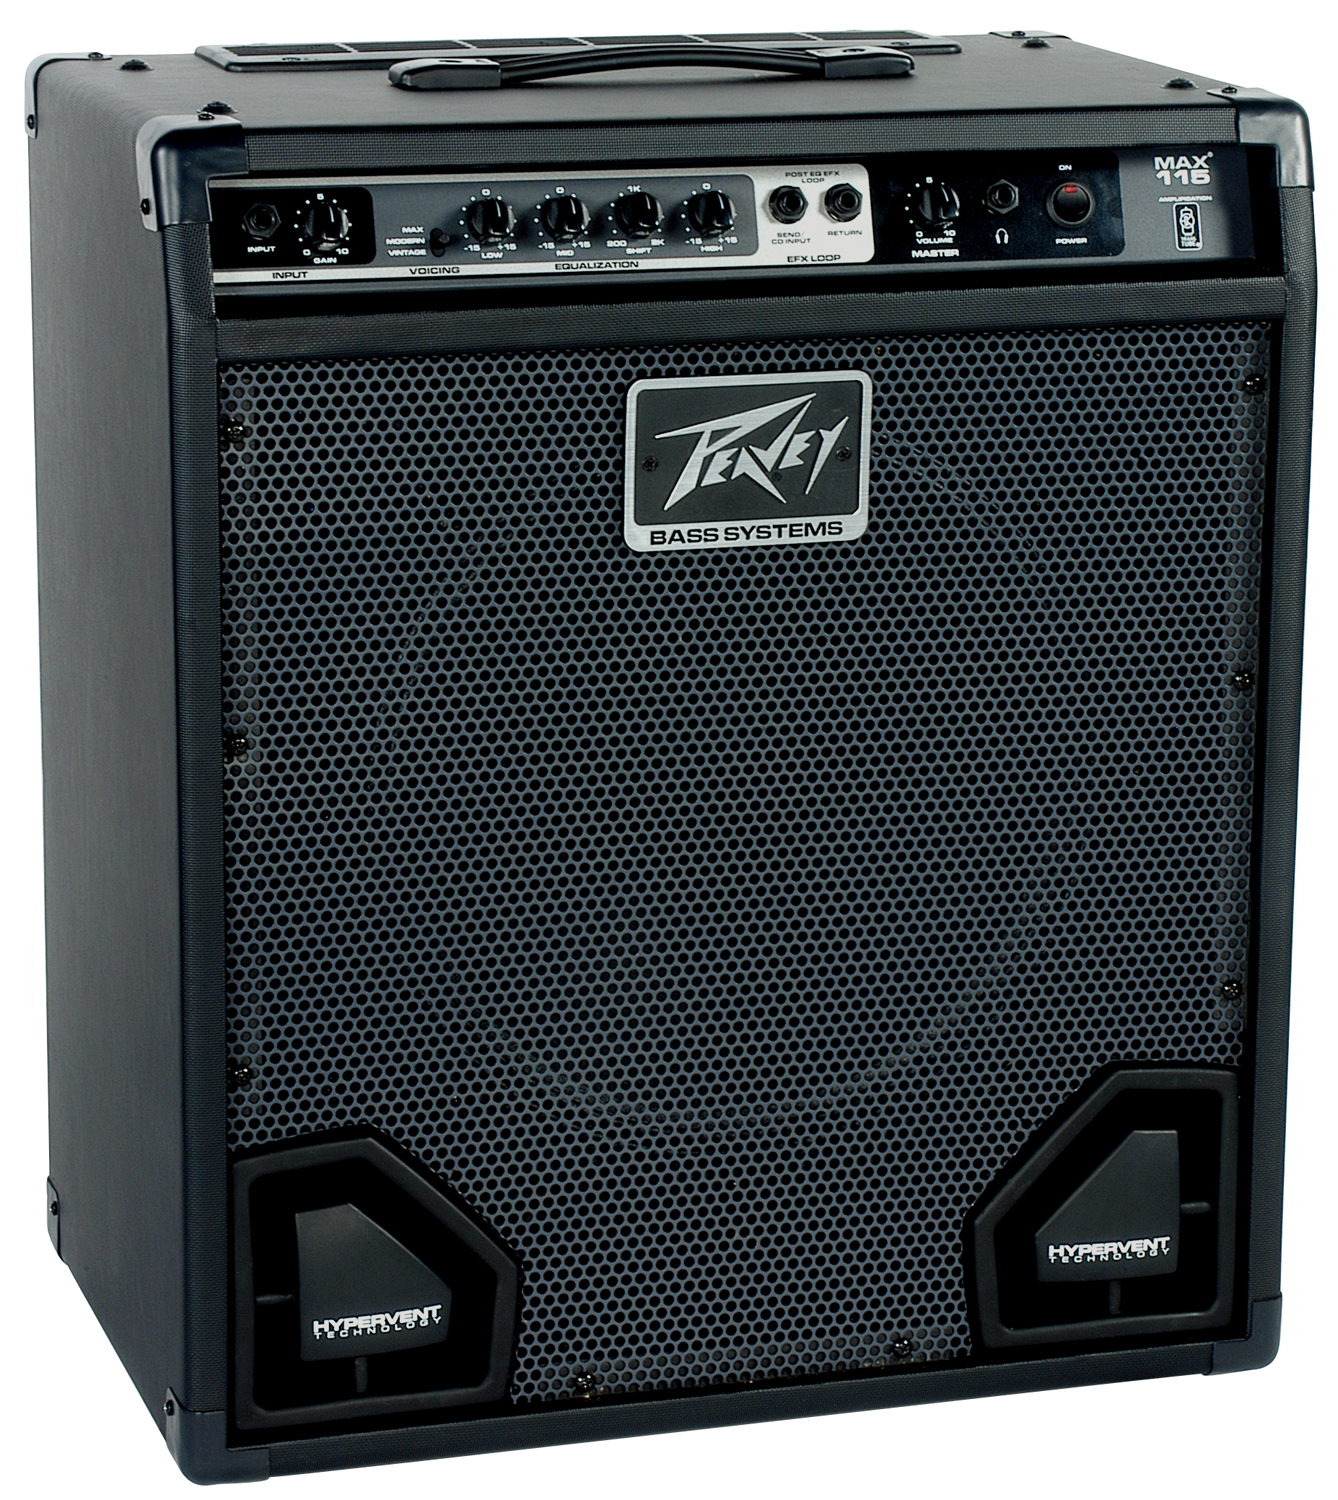 peavey max 115 electric bass guitar combo amplifier 15 speaker 300 watt amp pev13 573380 rs. Black Bedroom Furniture Sets. Home Design Ideas